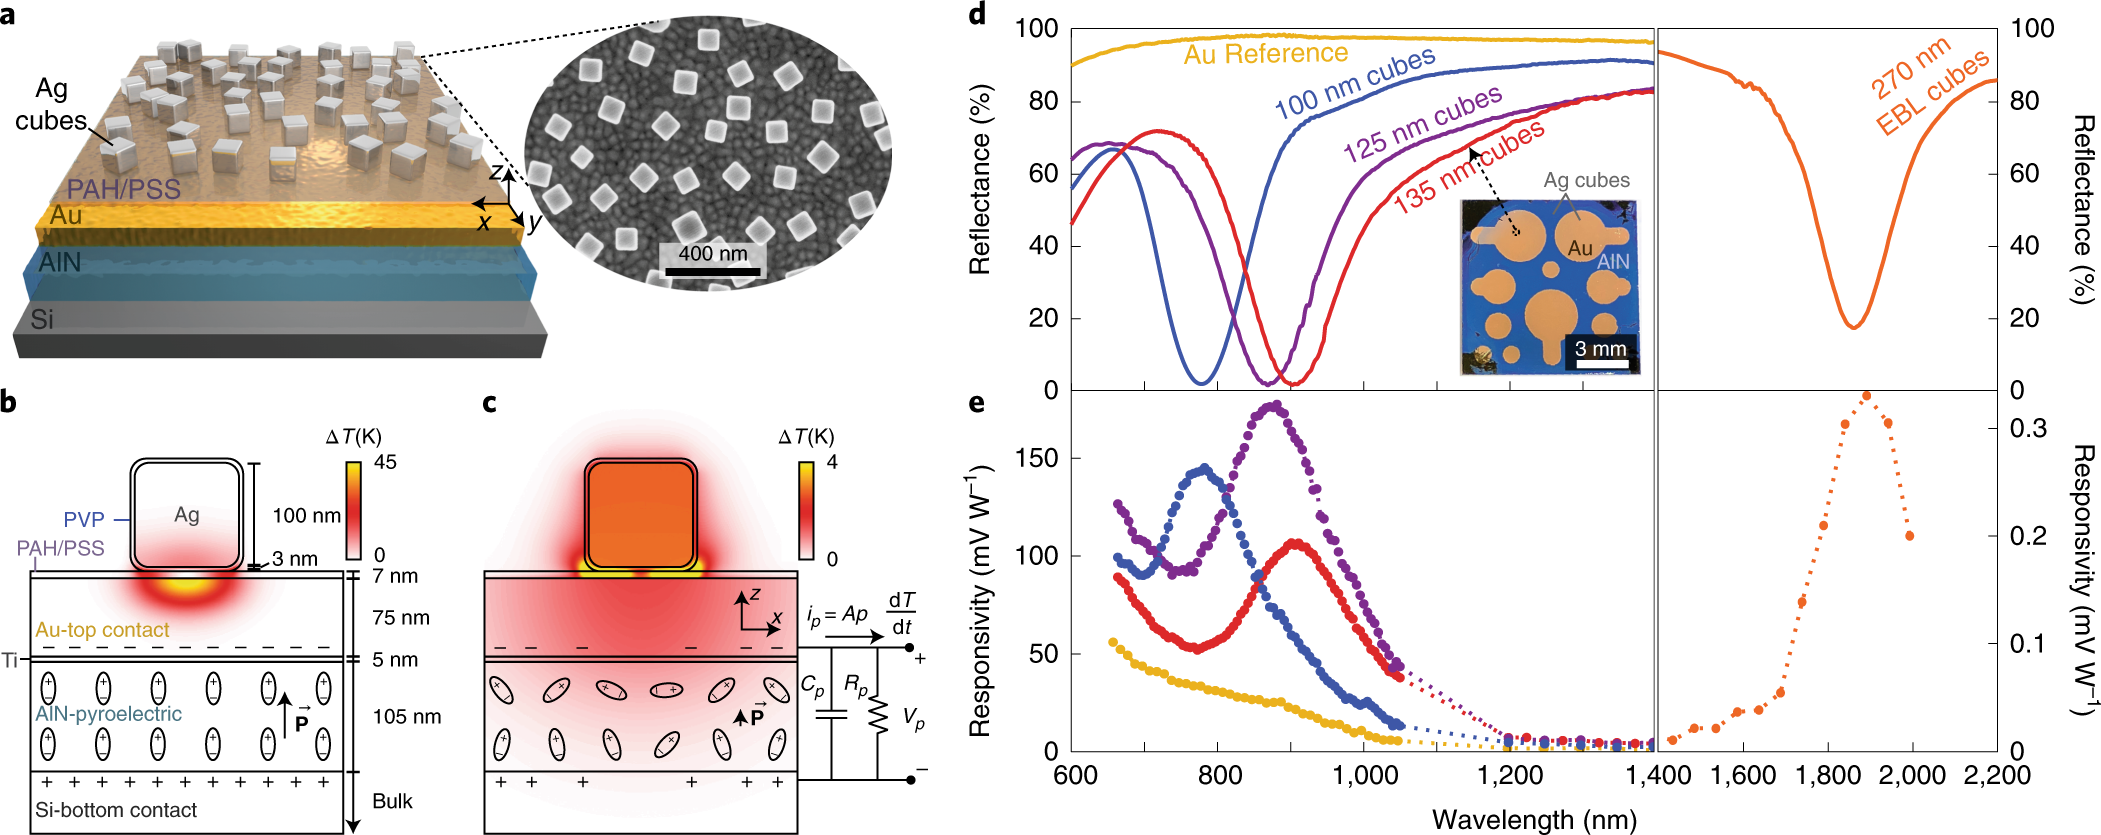 Ultrafast pyroelectric photodetection with on-chip spectral filters